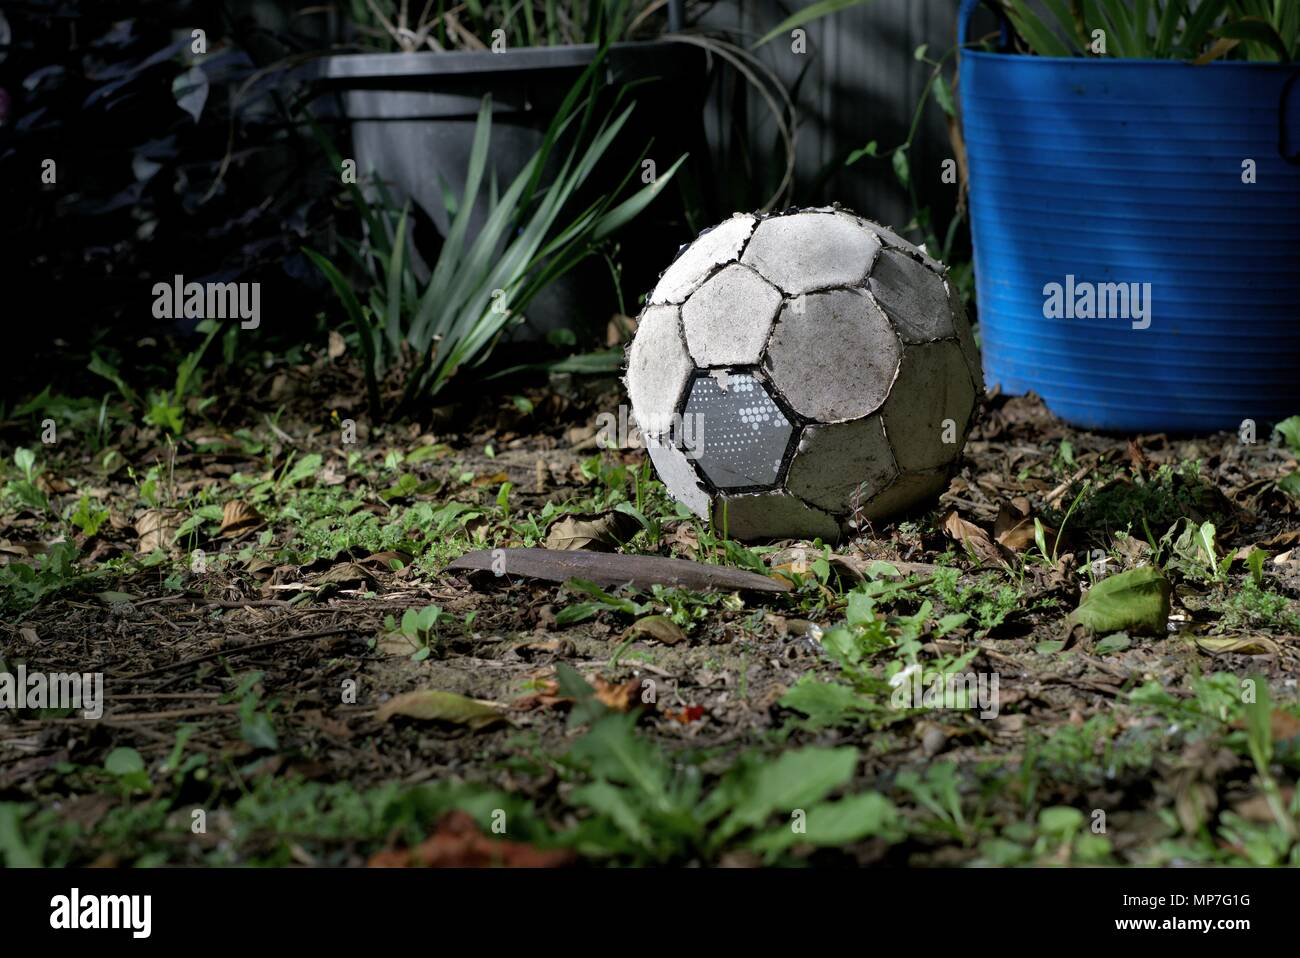 Torn up old soccer ball lay on grass. Worn out football. Concept of inactive person or useless object. - Stock Image